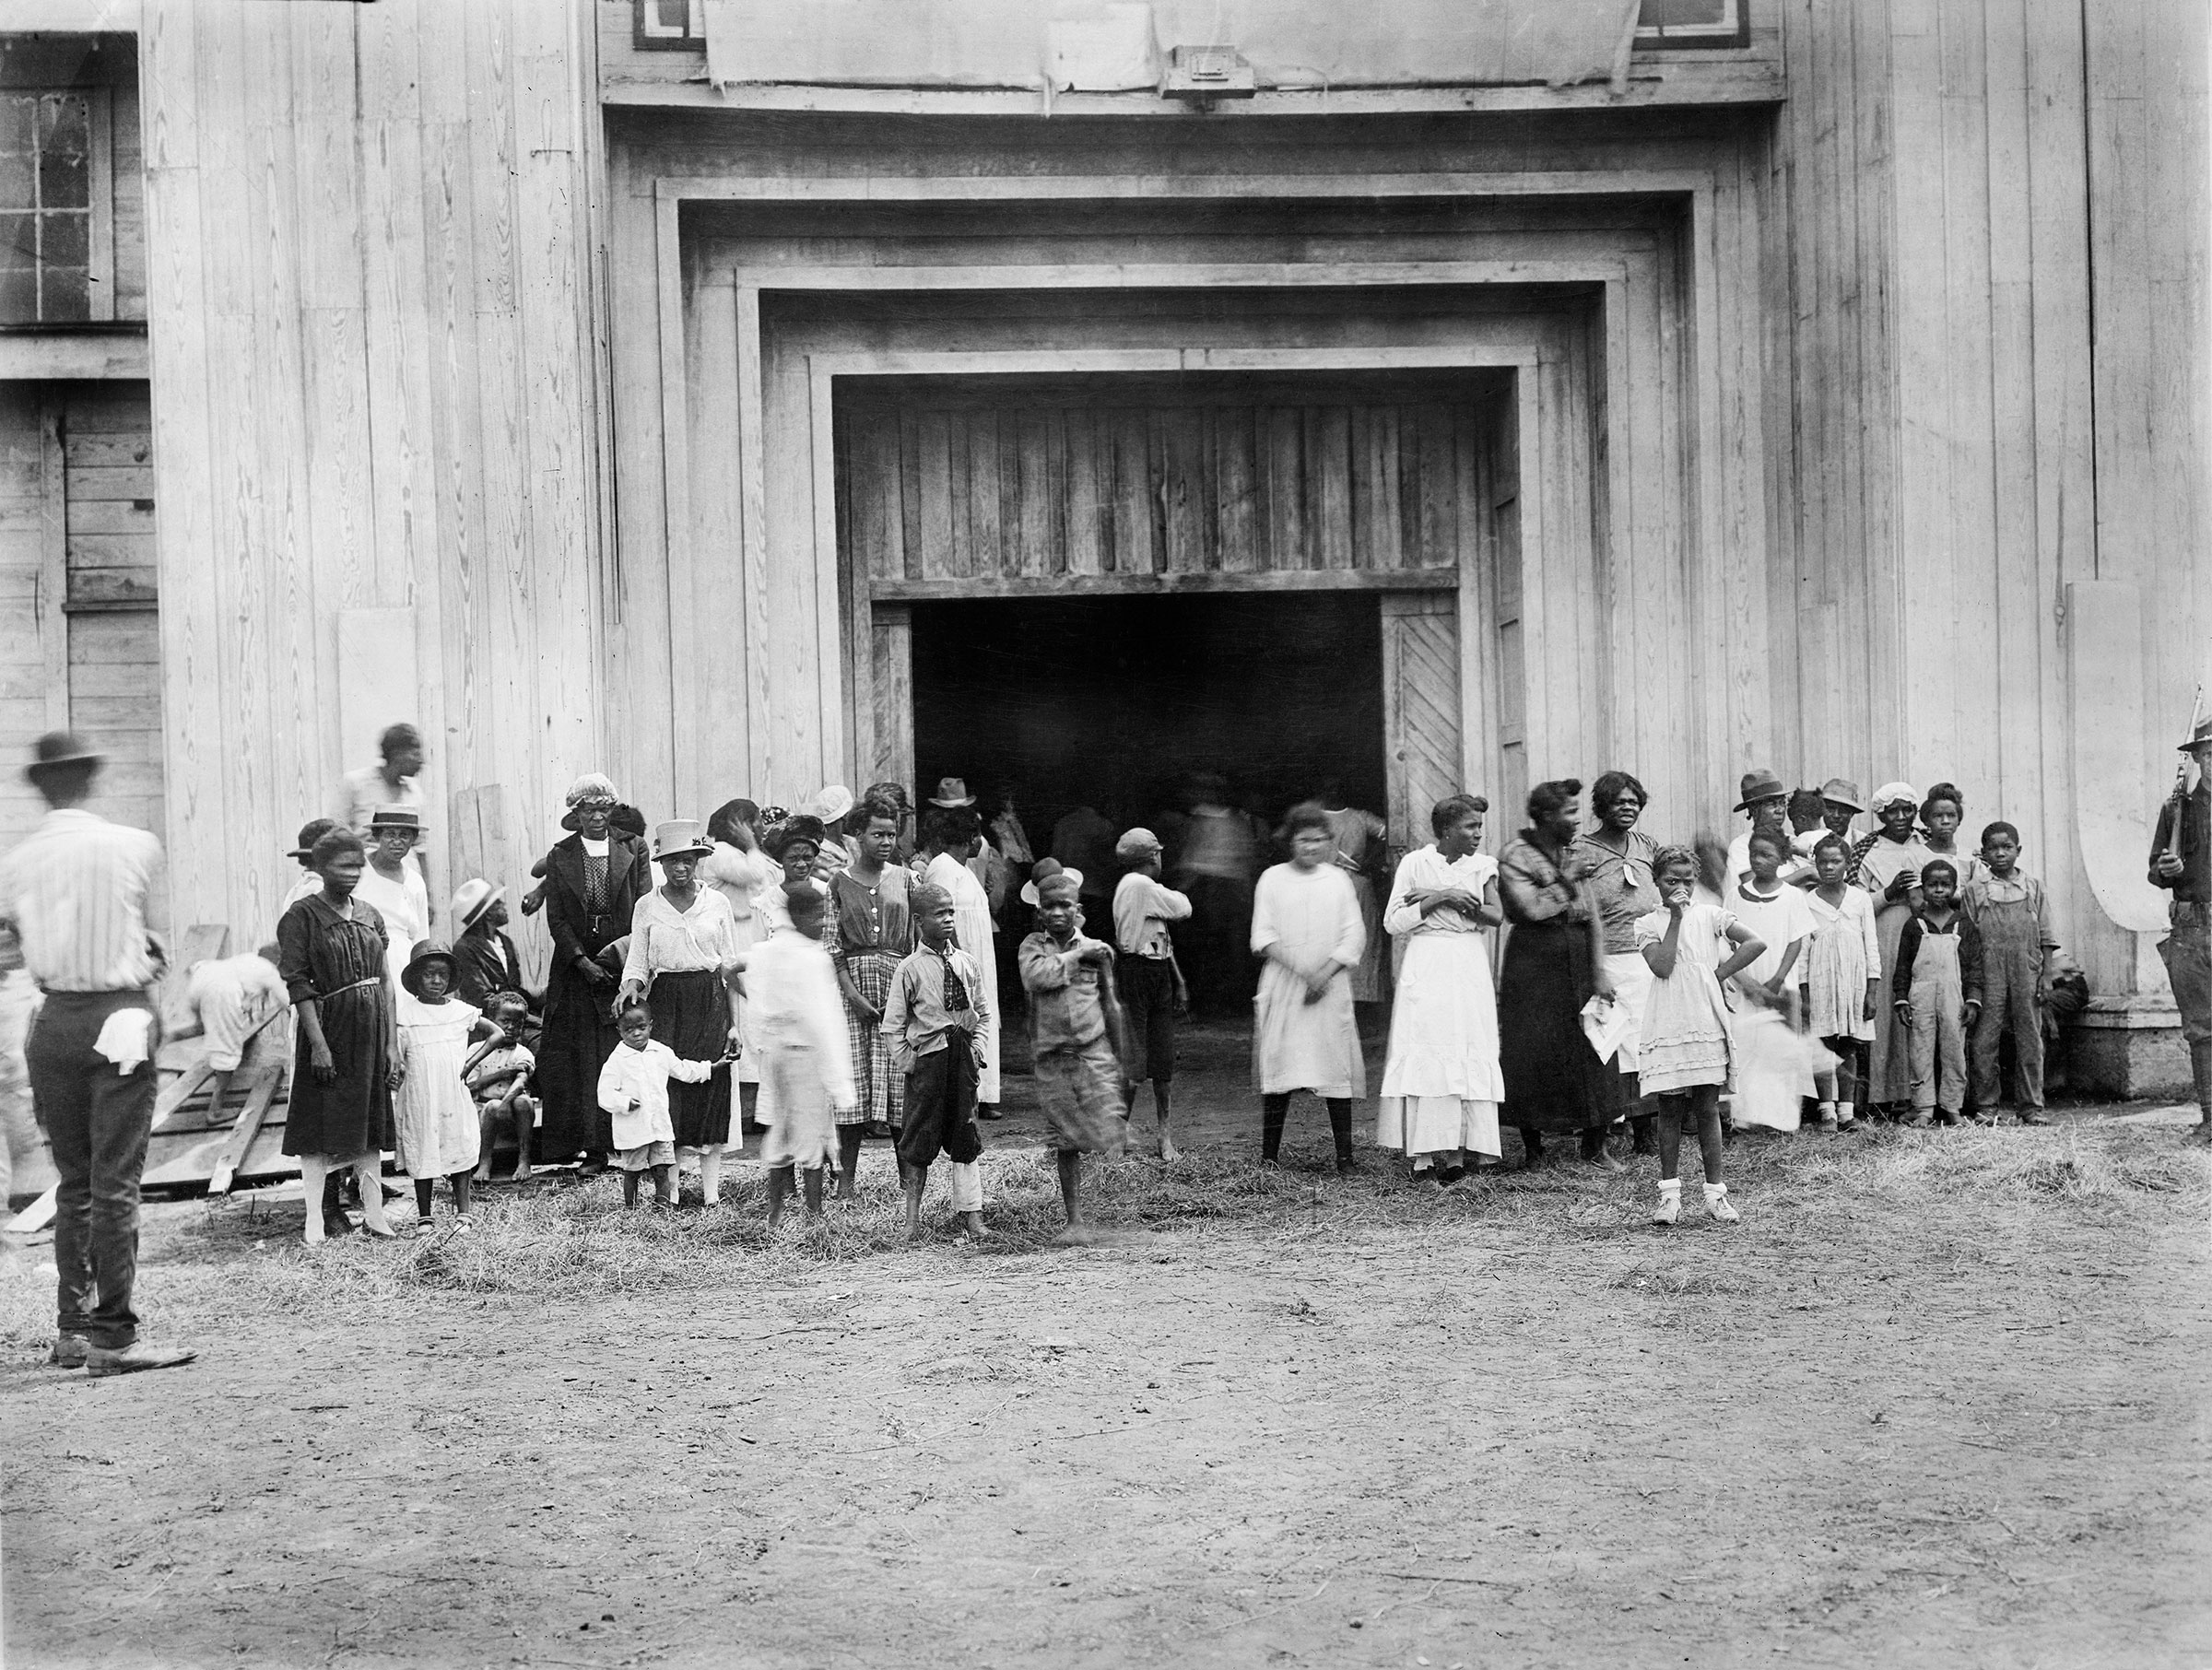 Entrance to a refugee camp on fair grounds in Tulsa in June 1921.